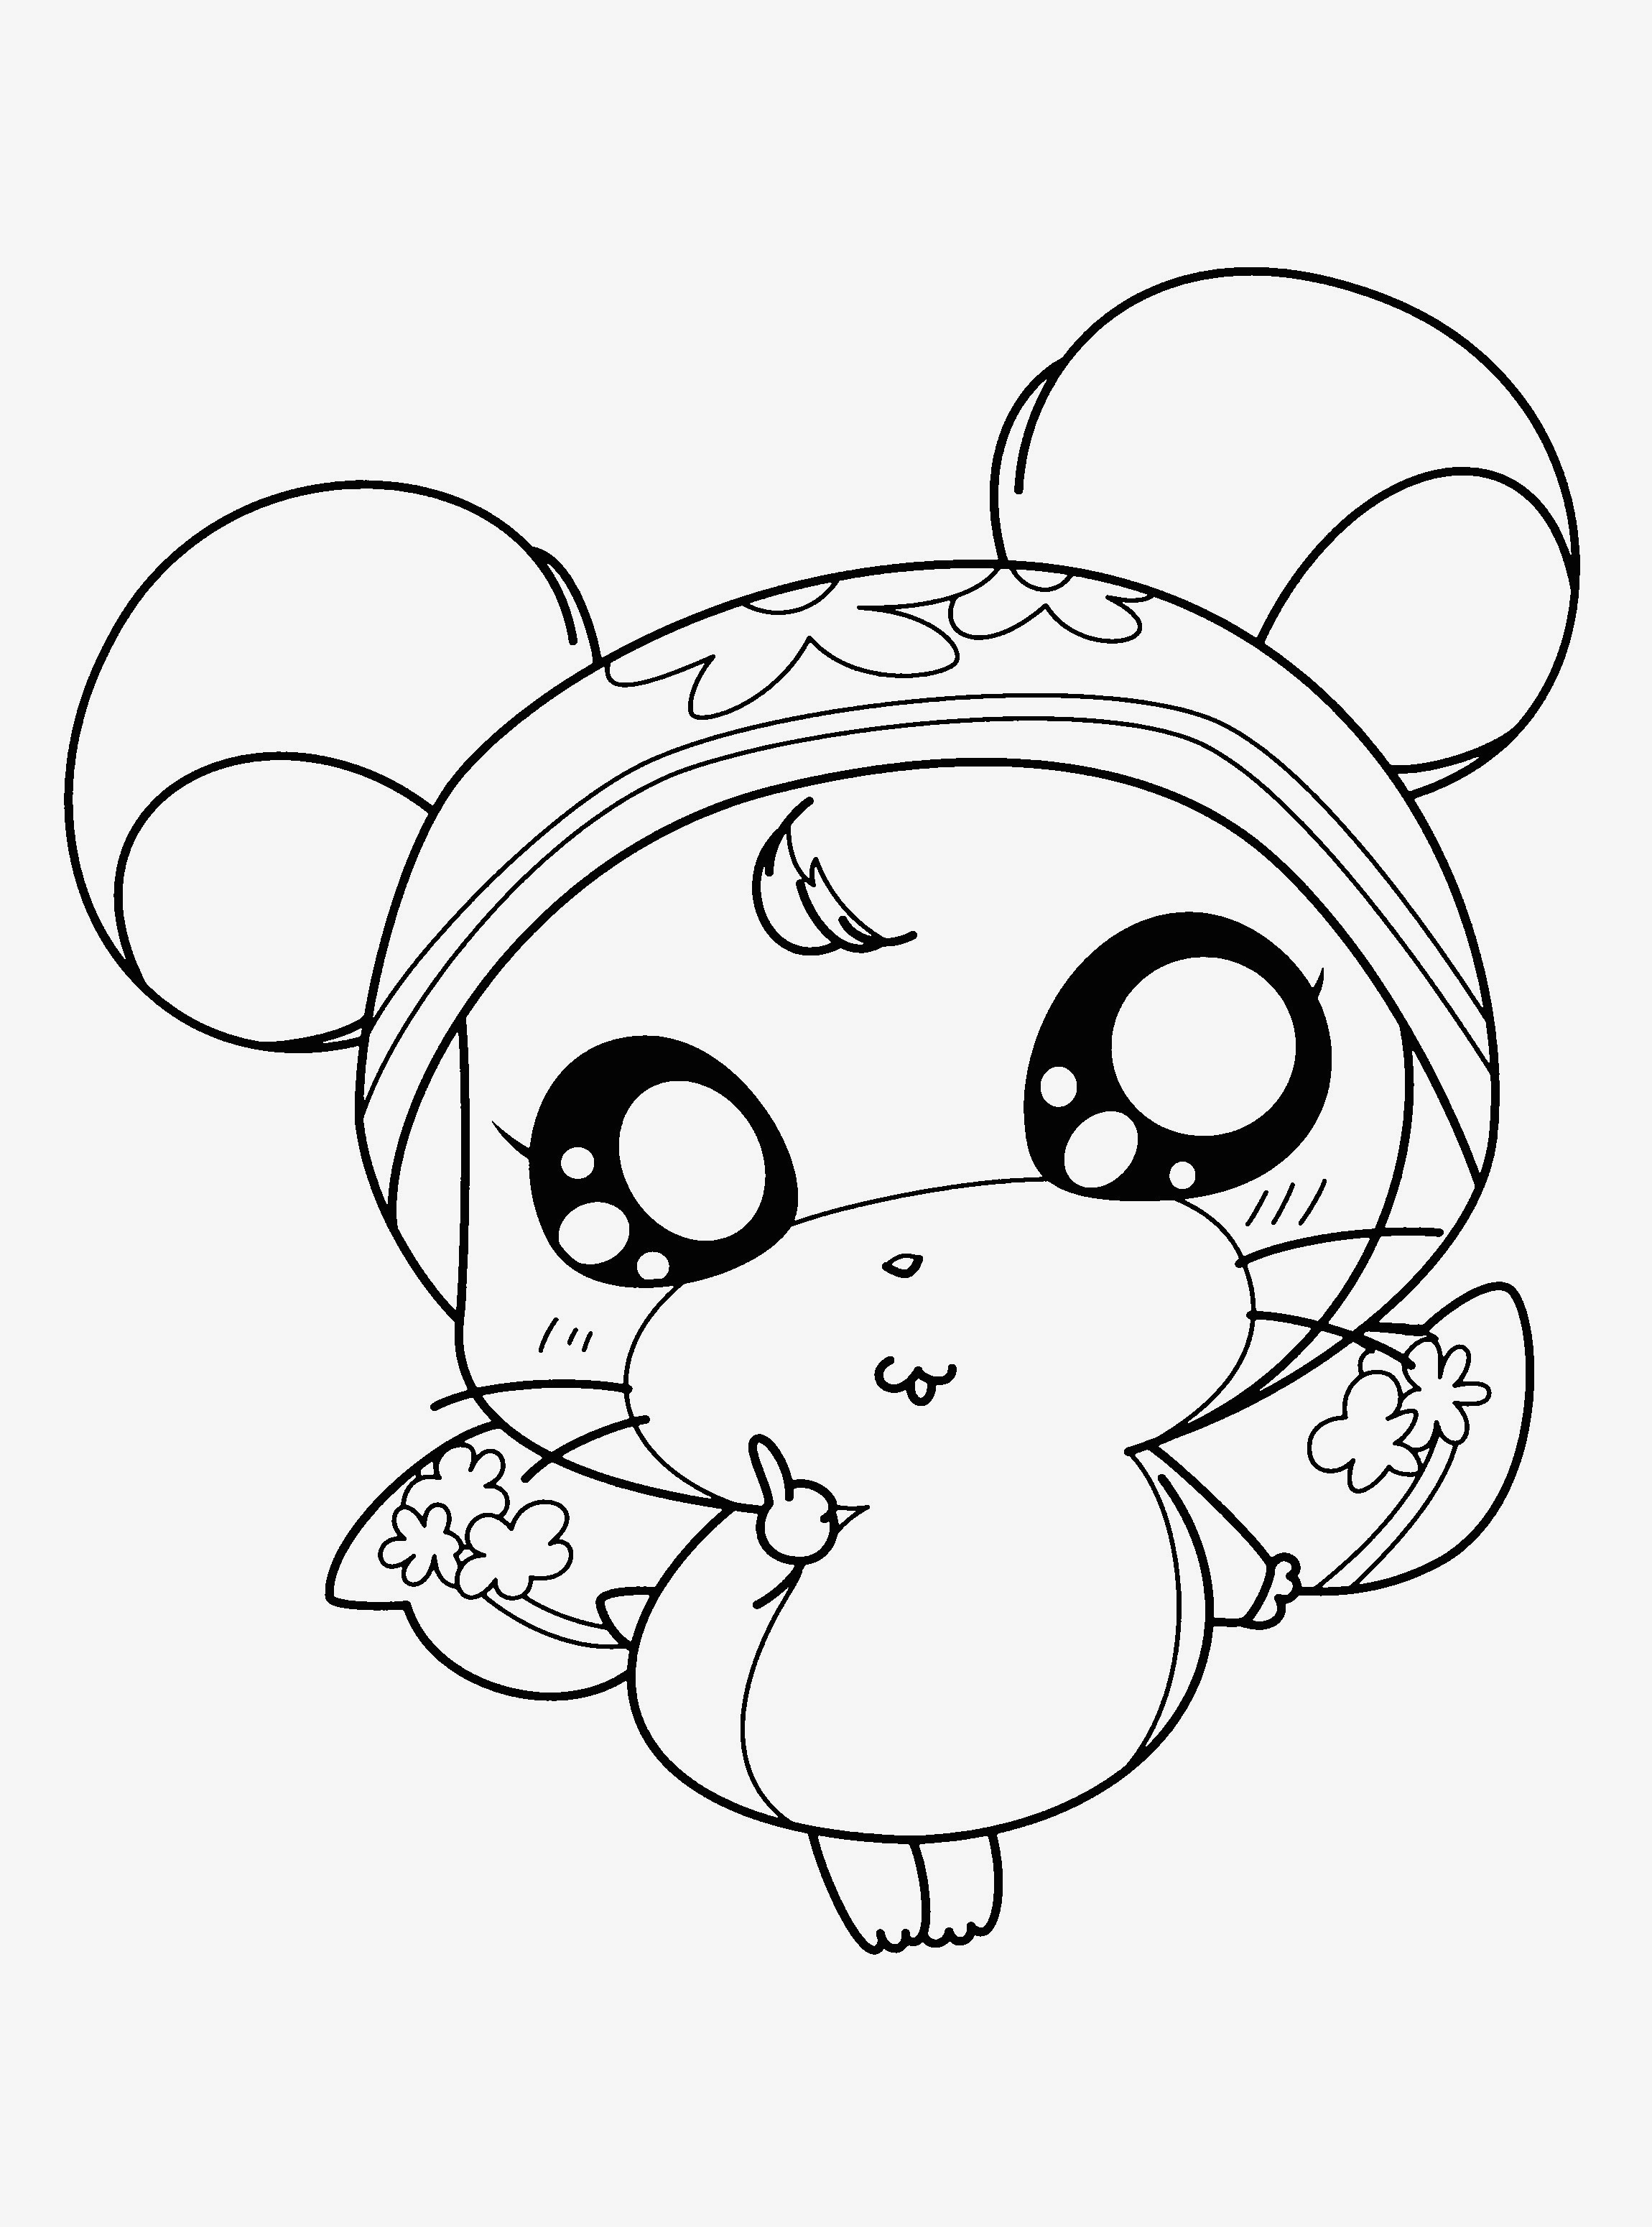 games coloring pages Download-J Animal Coloring Page Fascinating 43 Awesome Gallery Colouring Worksheets Printable J Animal Coloring Page 14-k